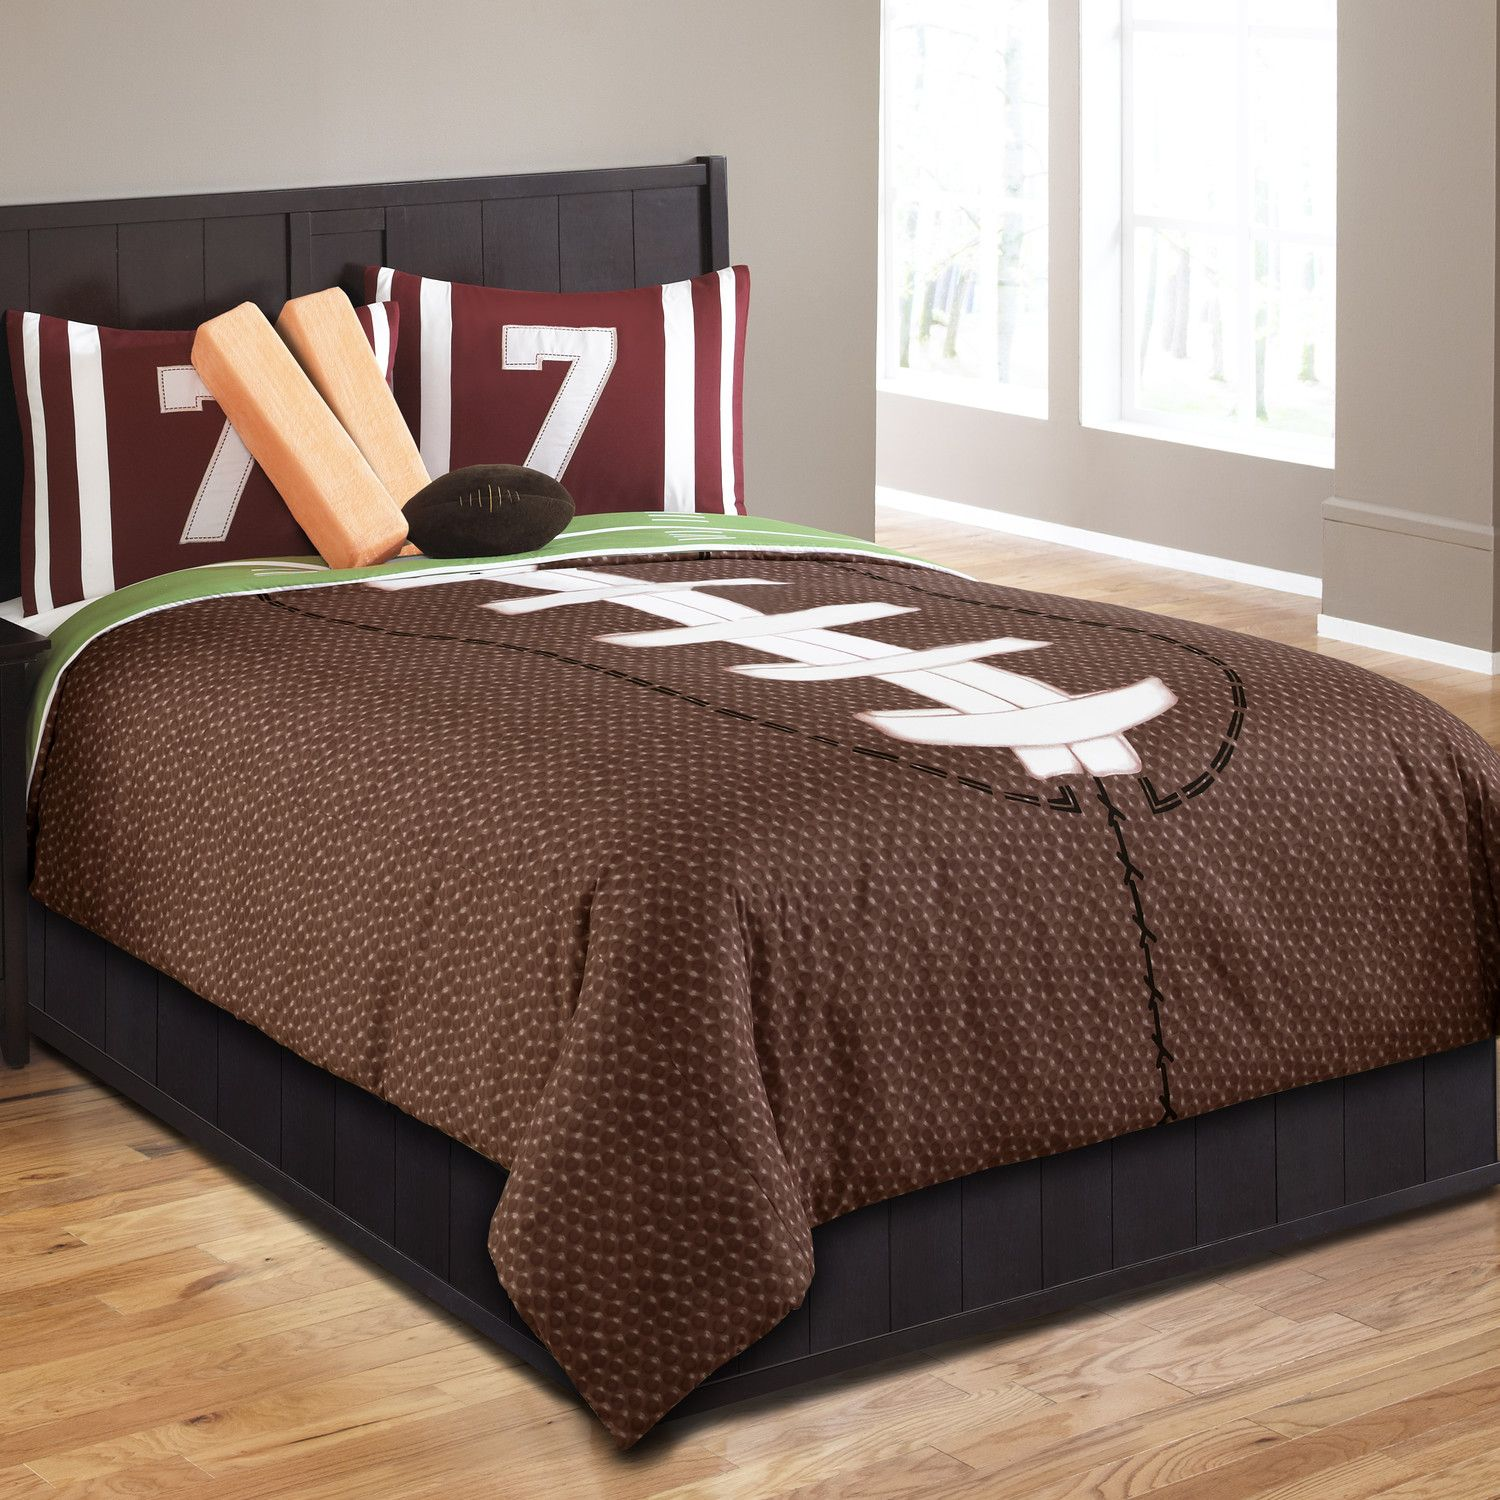 Boys sports bedding sets full - Brown Football Bedding Twin Full Queen Sports Comforter Set With Pillows